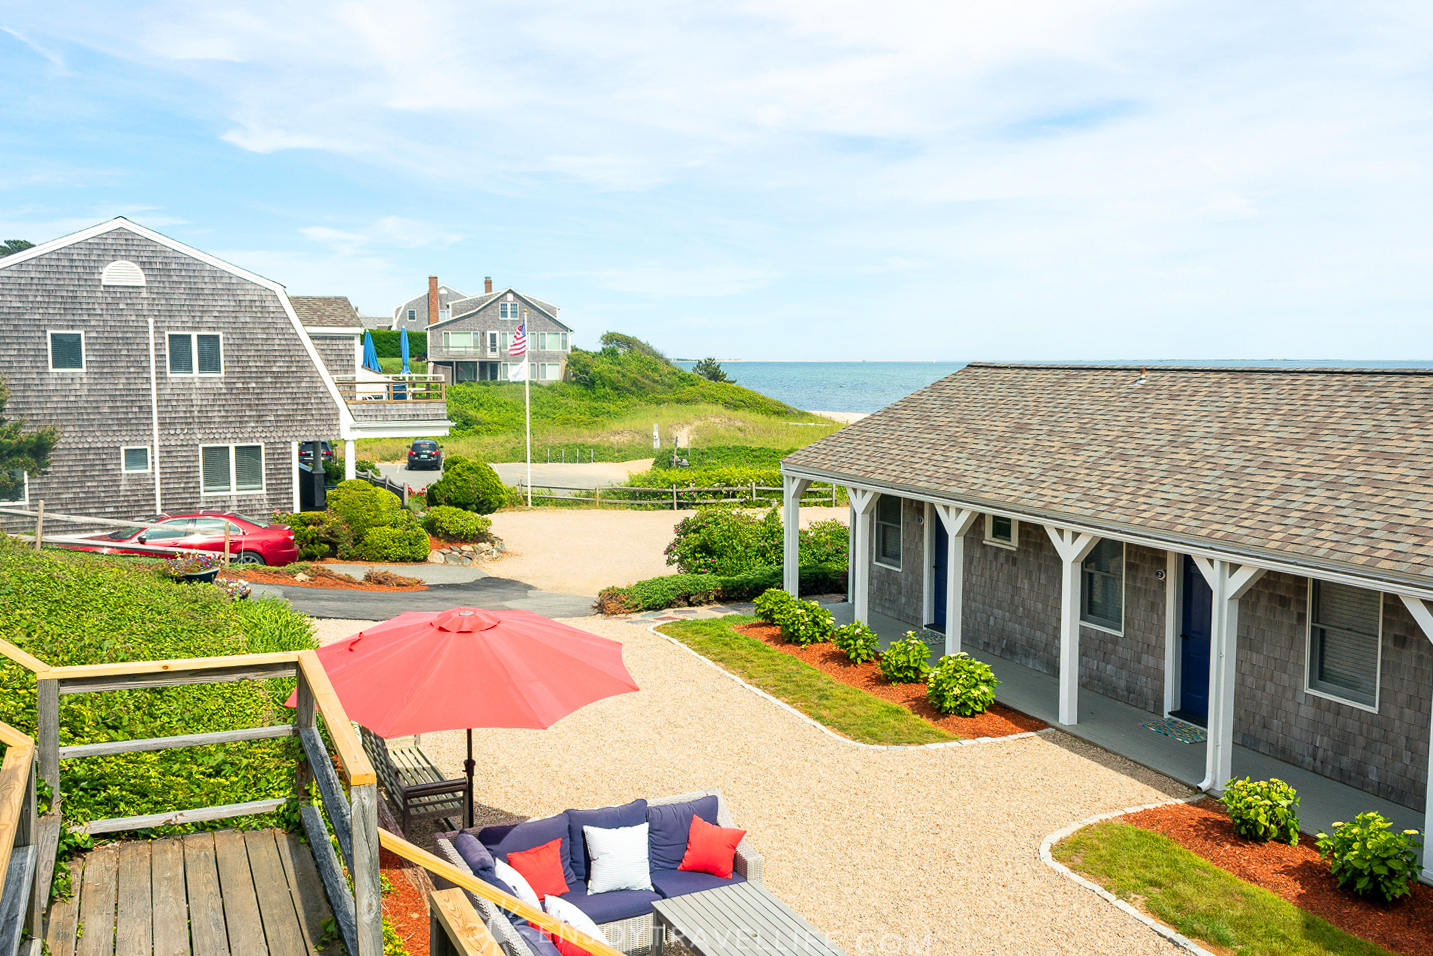 Waterfront Weekend in Chatham - Chatham Tides Inn Reception